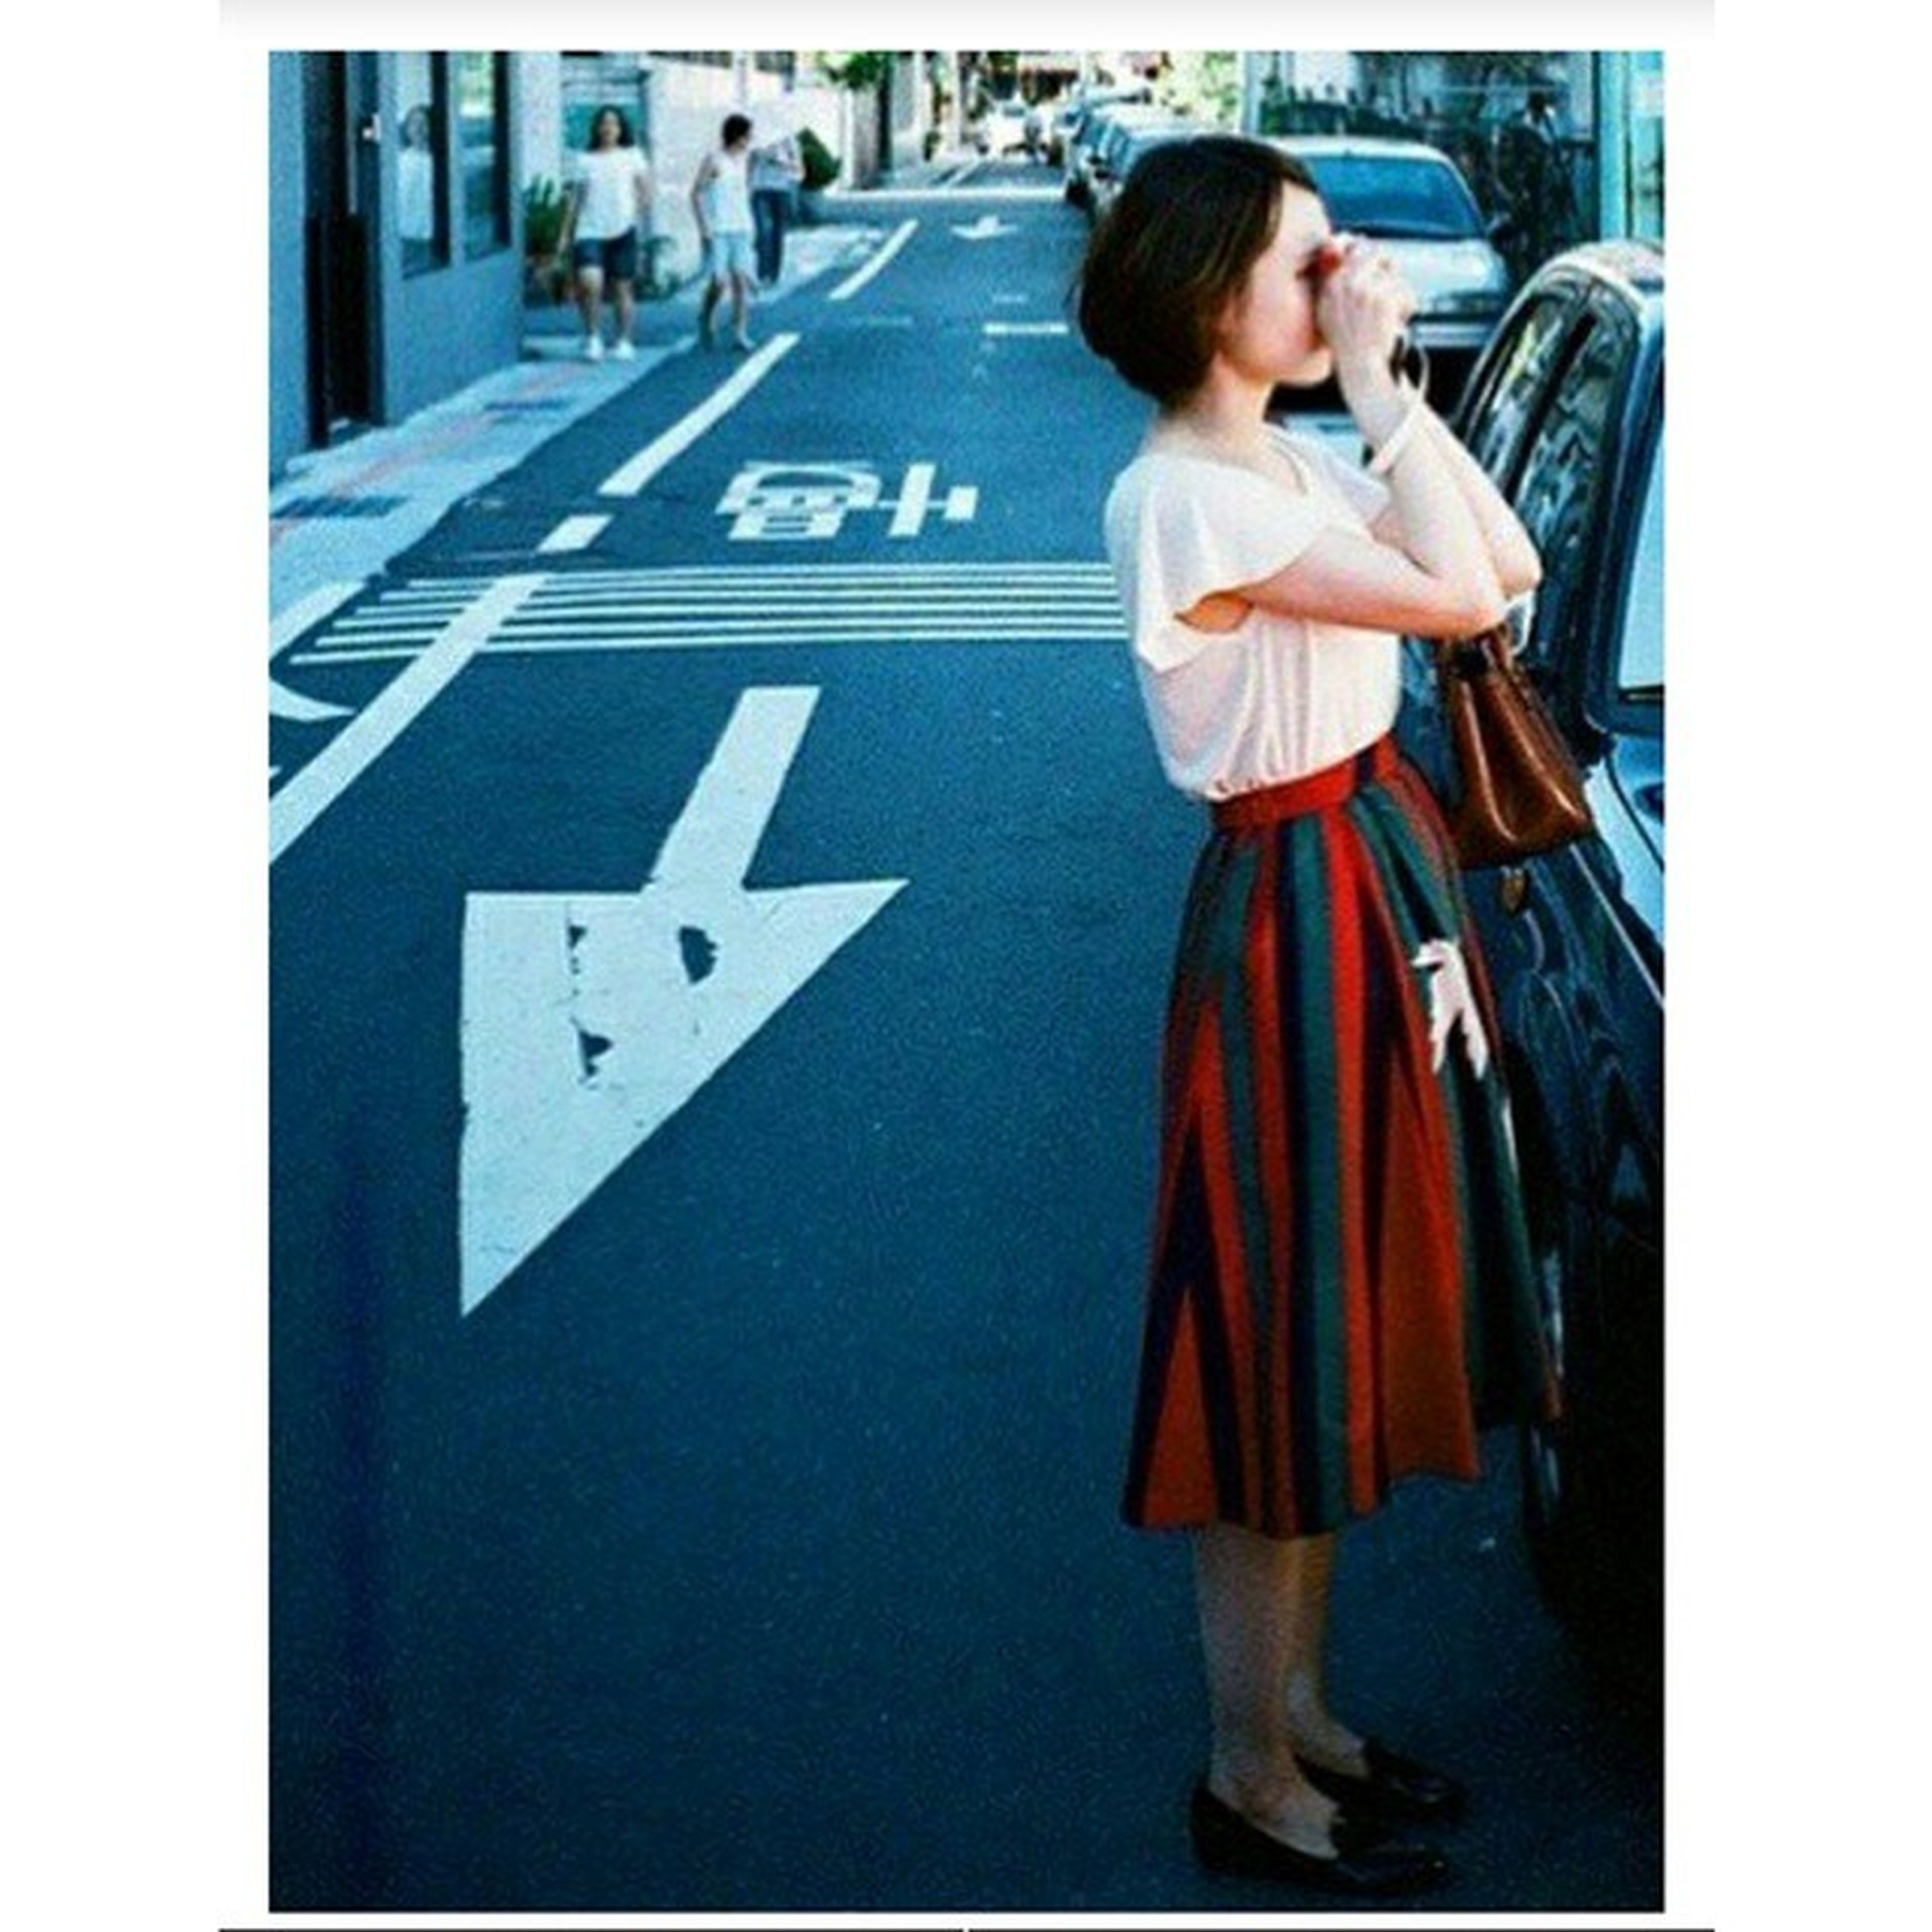 transfer print, communication, auto post production filter, street, lifestyles, full length, casual clothing, text, city, leisure activity, road, transportation, person, western script, front view, men, road marking, holding